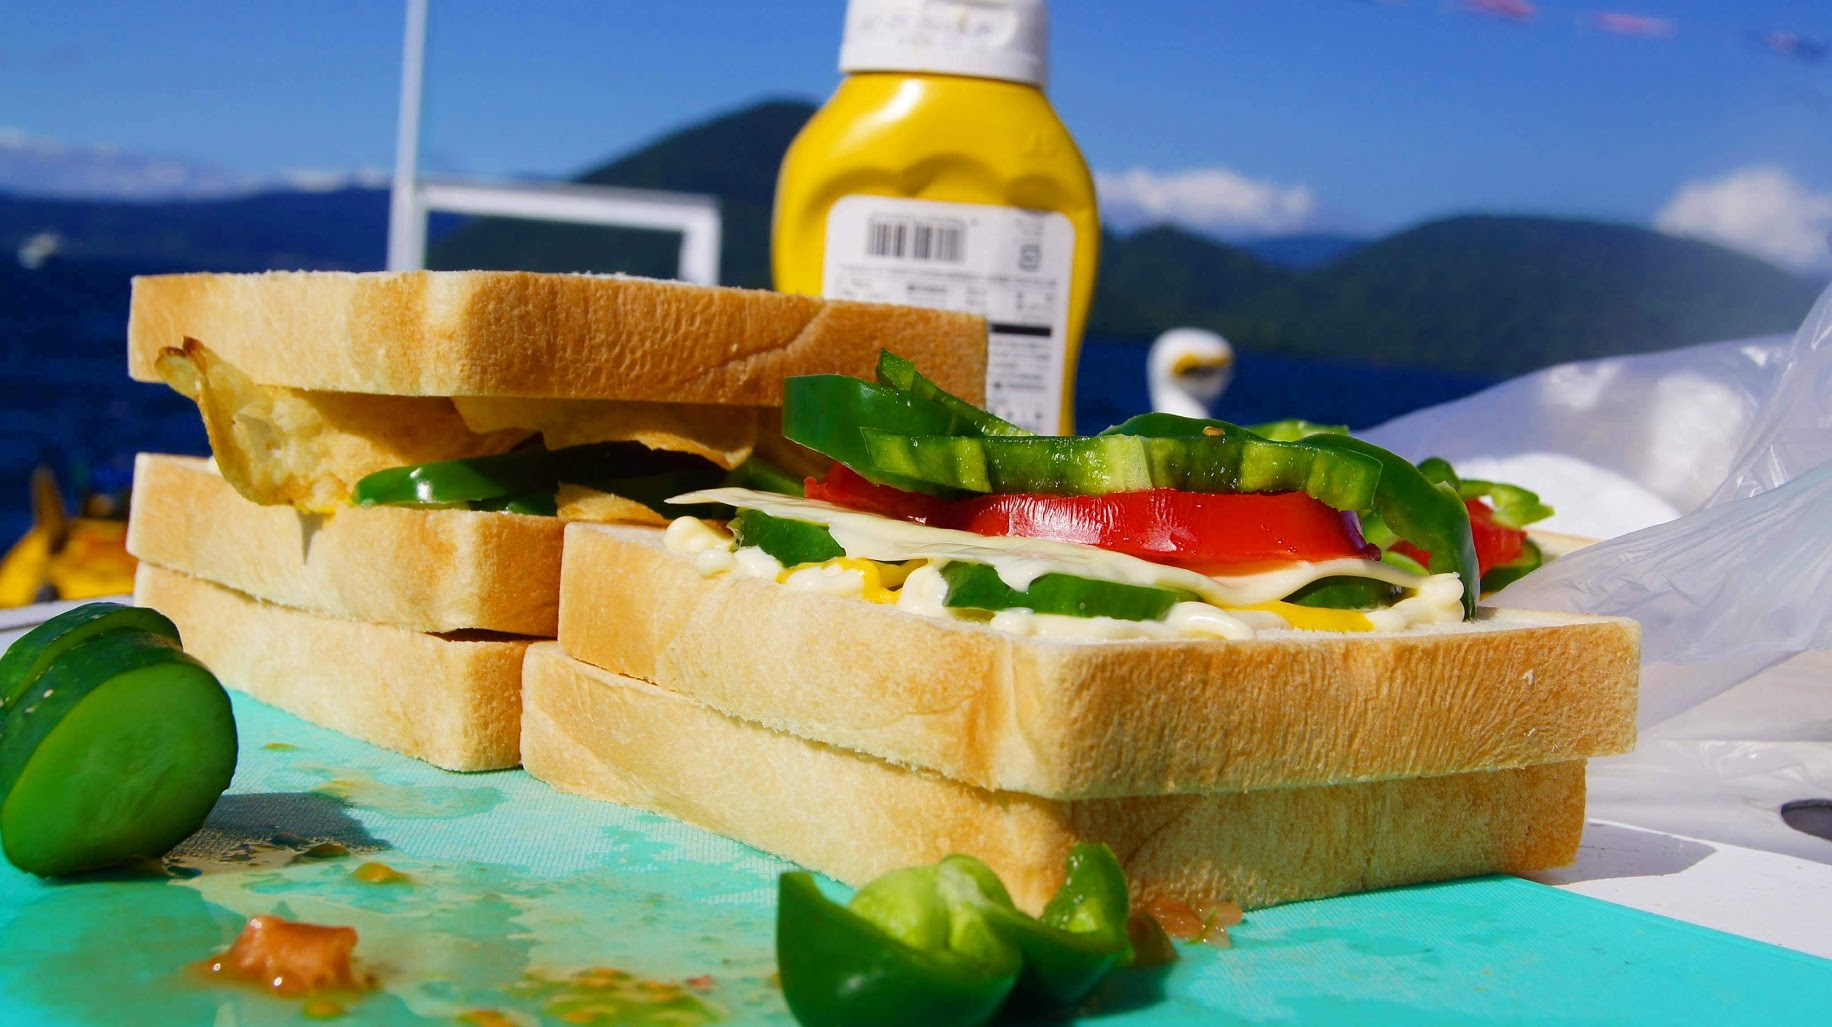 A close up picture of vegetarian sandwiches on a roadtrip